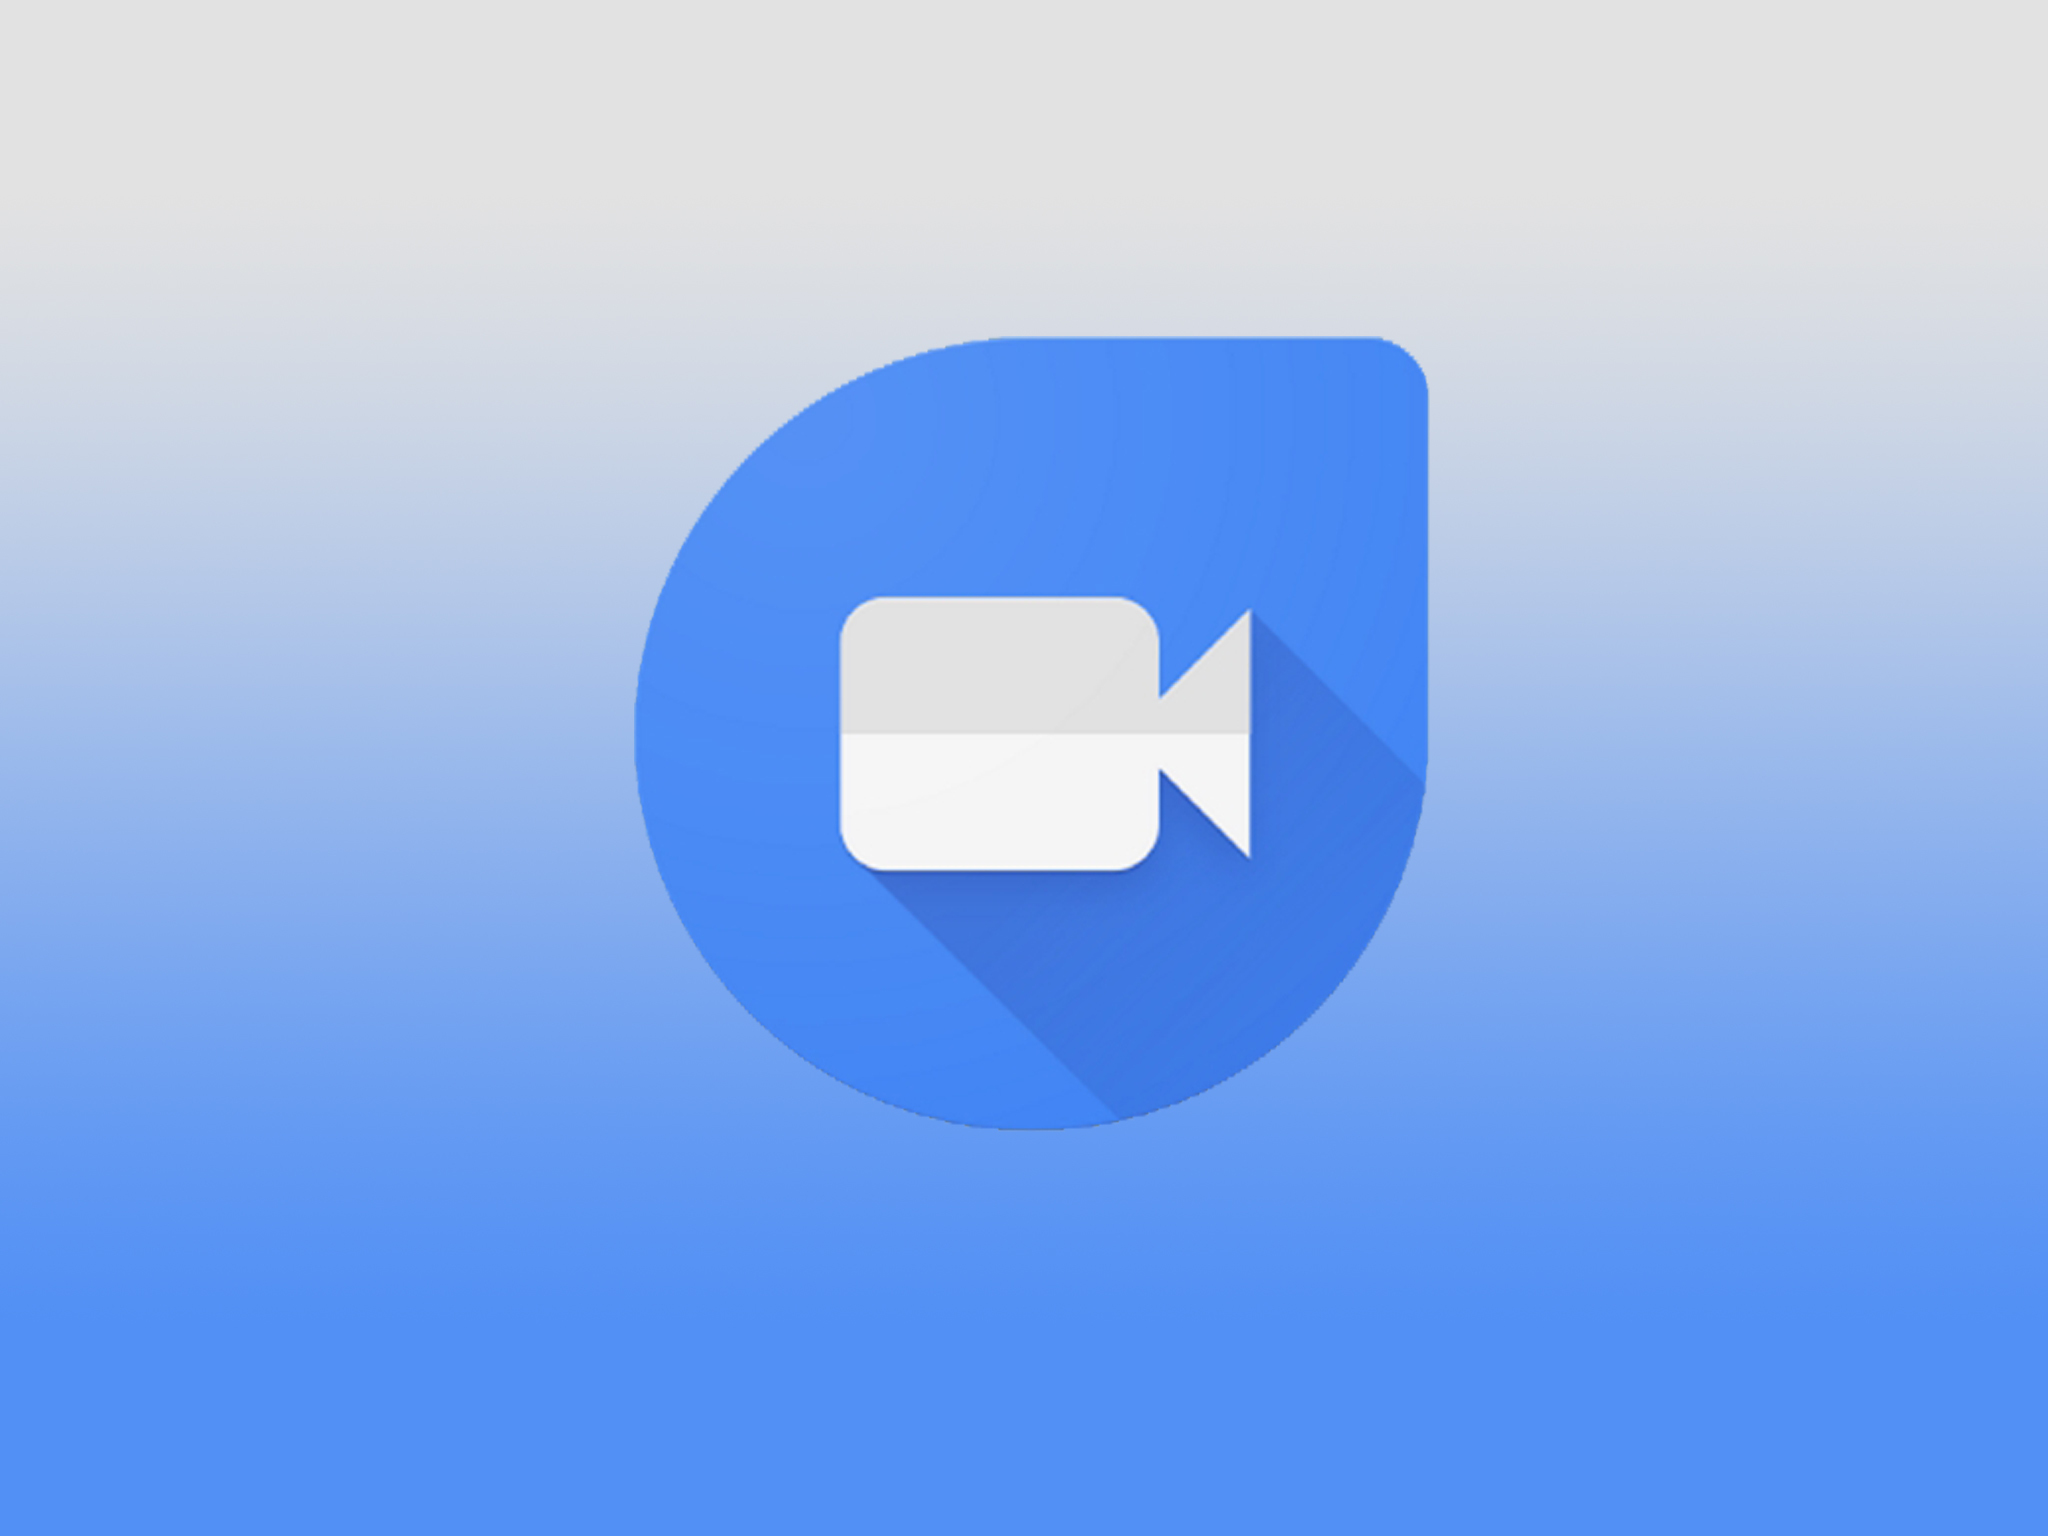 Google Duo video chat app logo